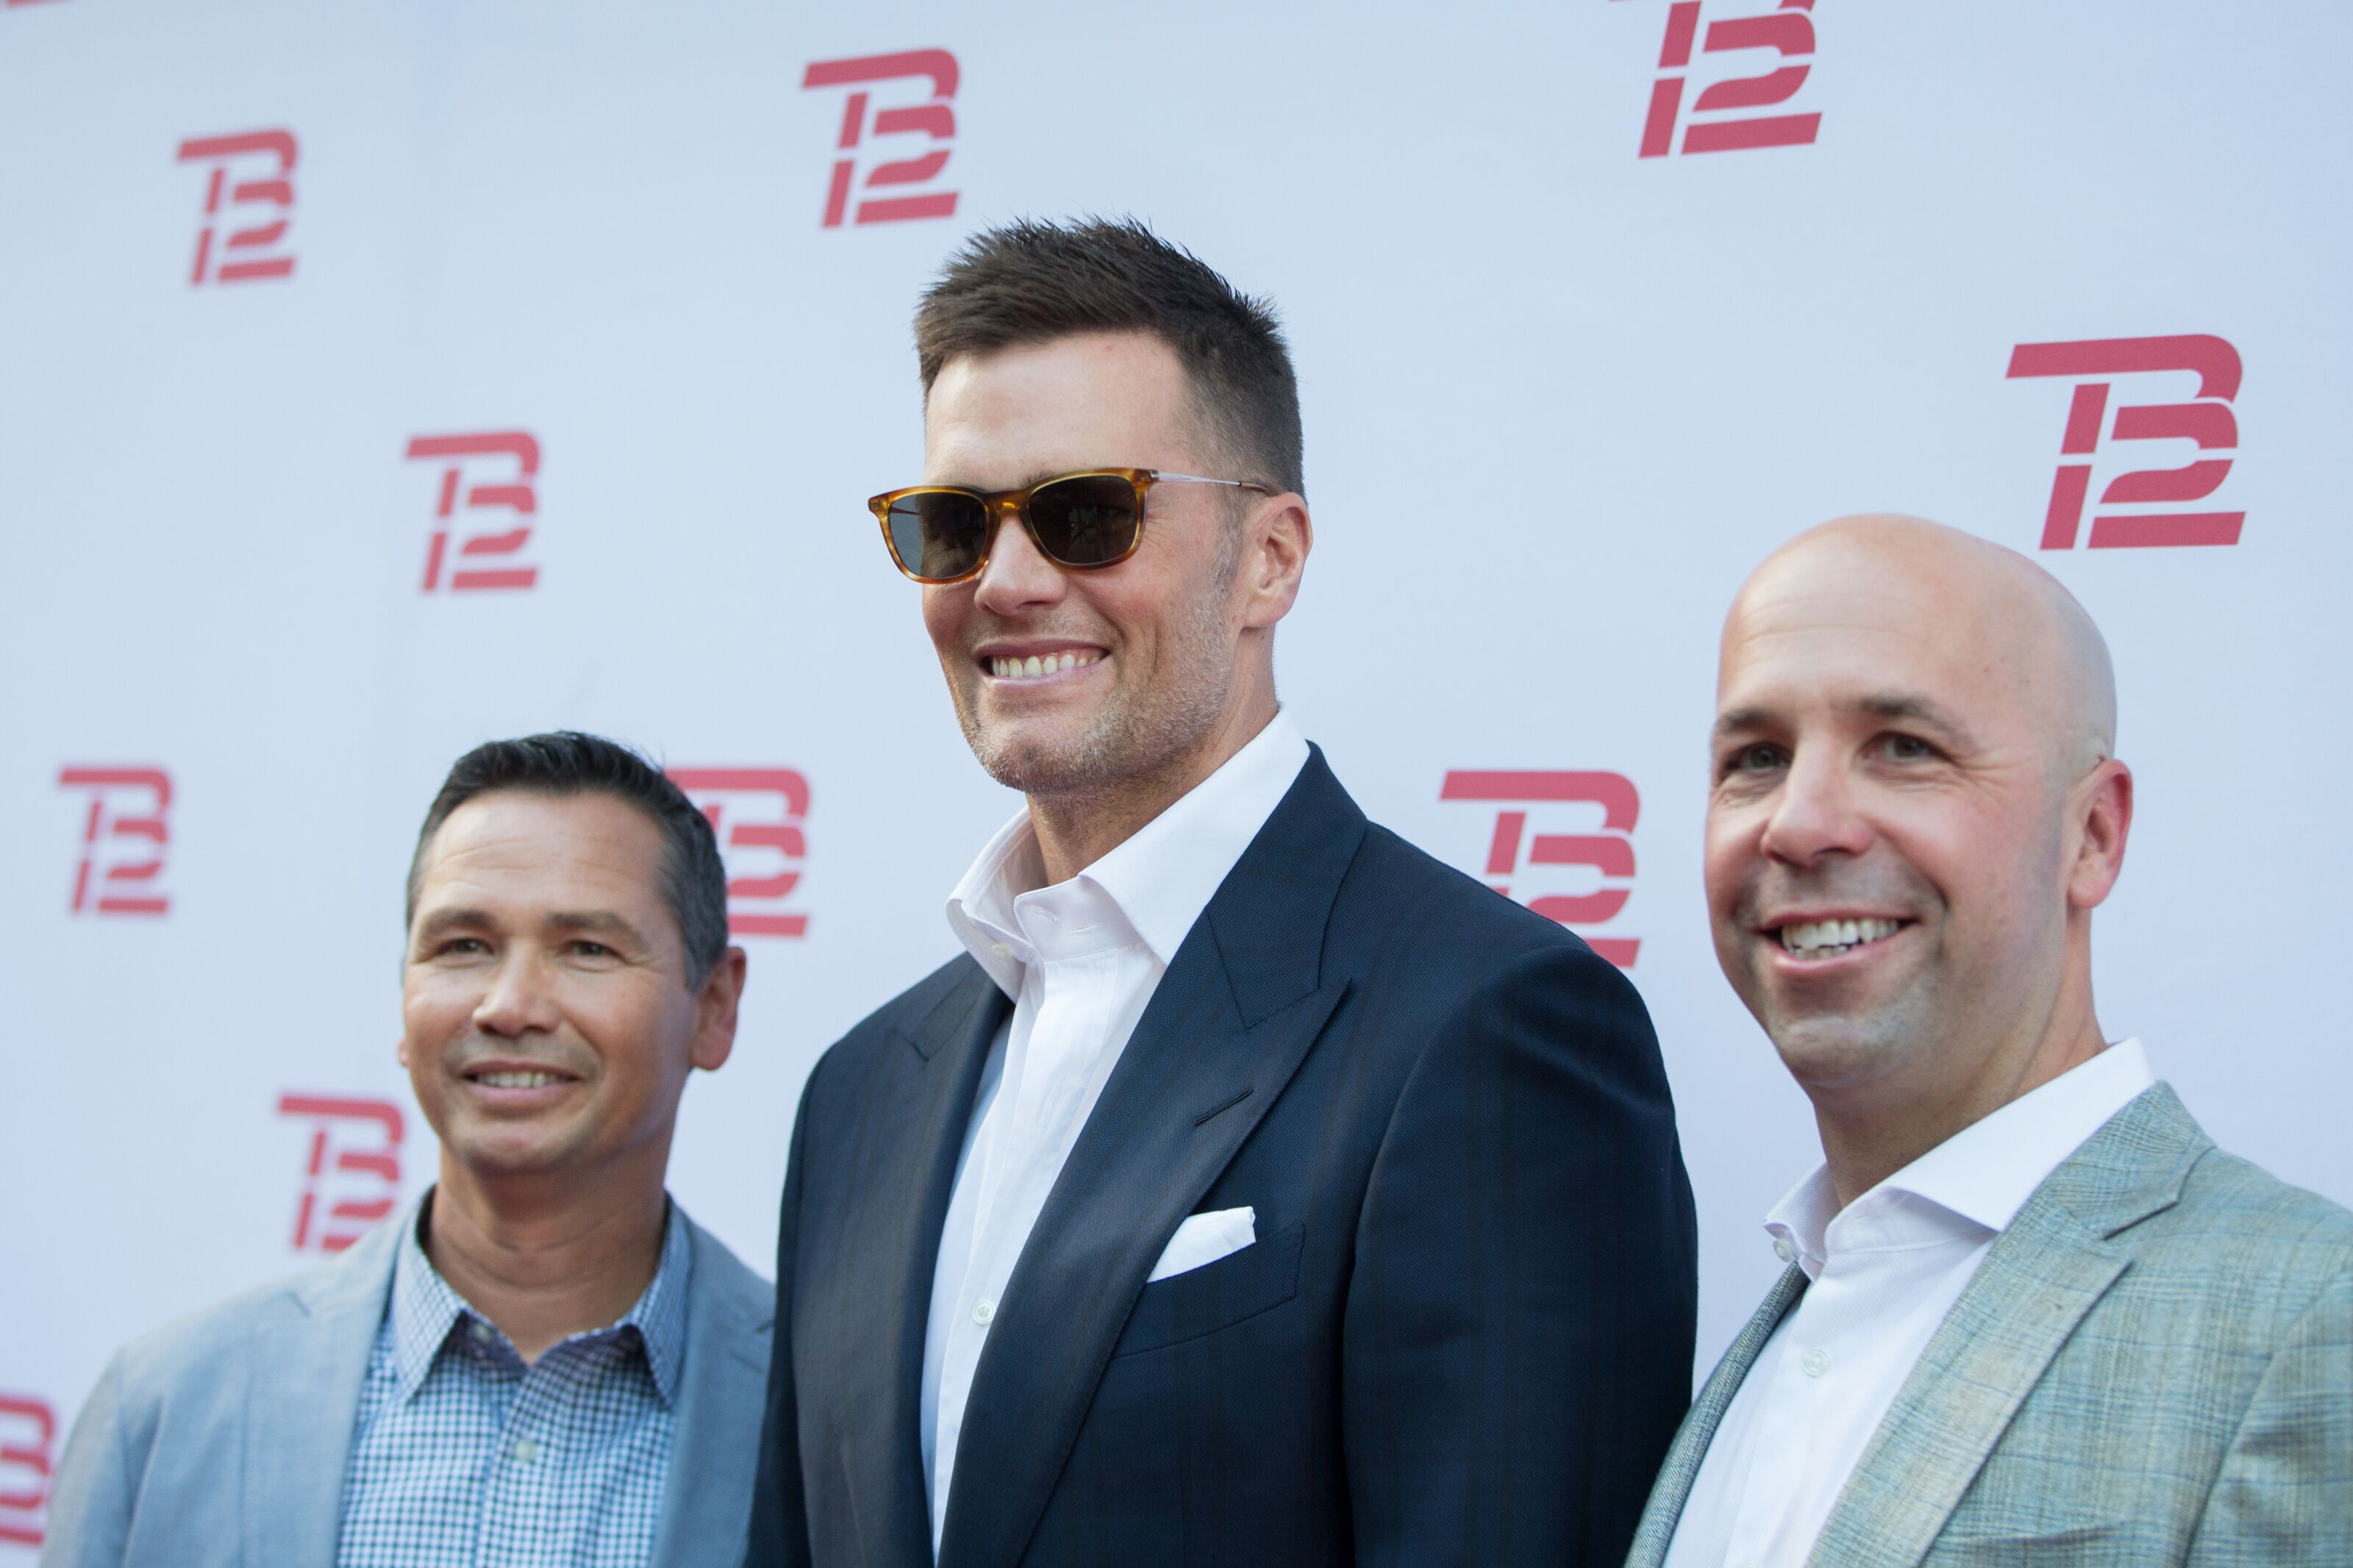 Could Tom Brady's frustrations be linked to the TB12 brand?